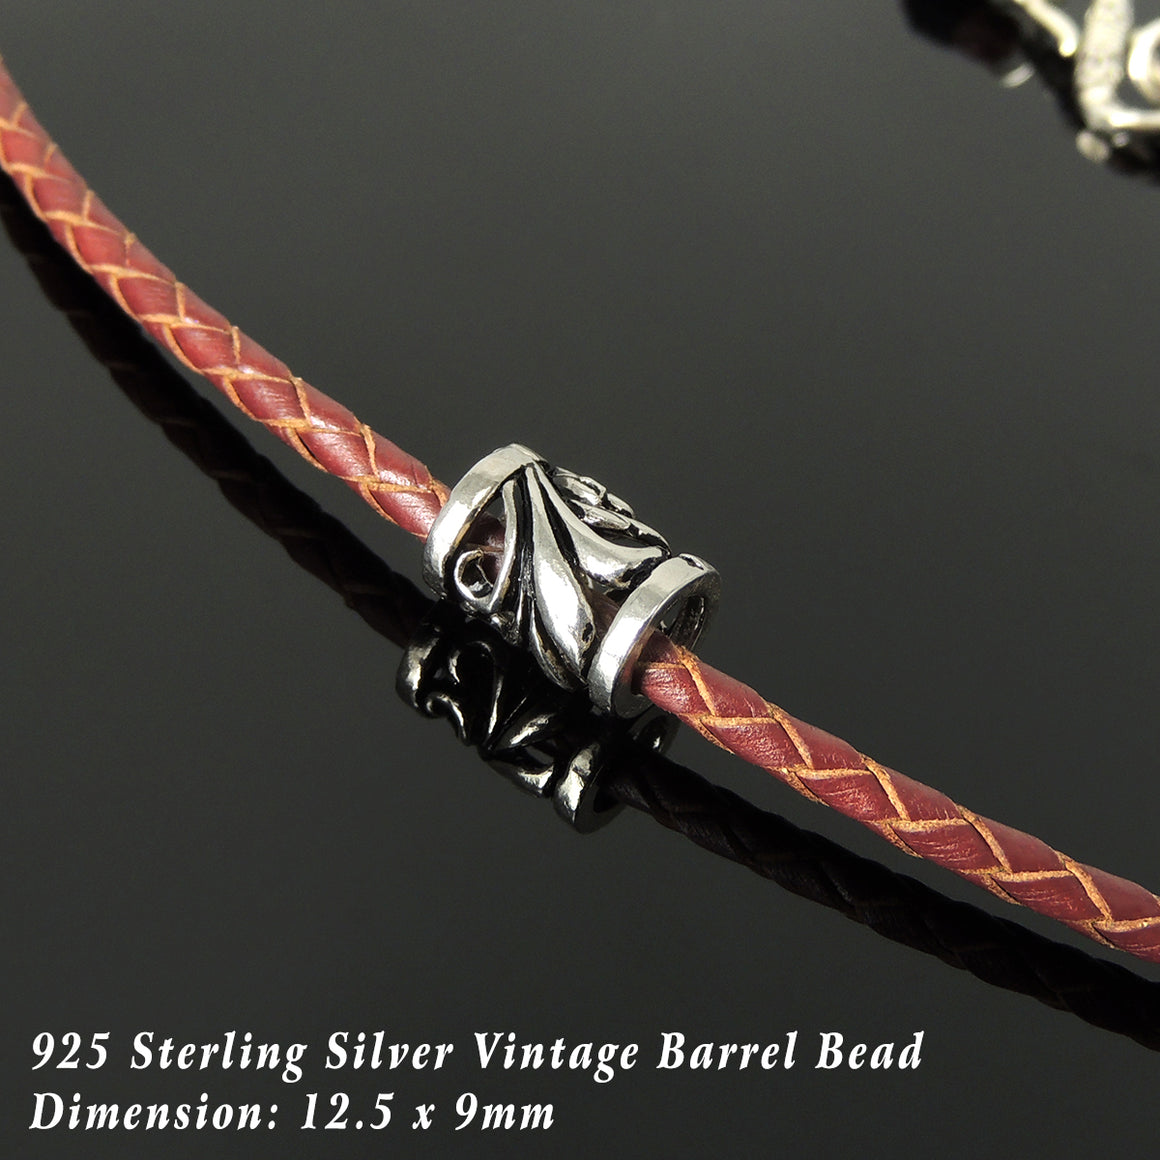 Handmade Vintage Celtic 90's Choker Necklace - Authentic Turkish Red Leather for Men's Women's Casual Style with Sterling Silver 925 (non-plated) Toggle S-Clasp NK233